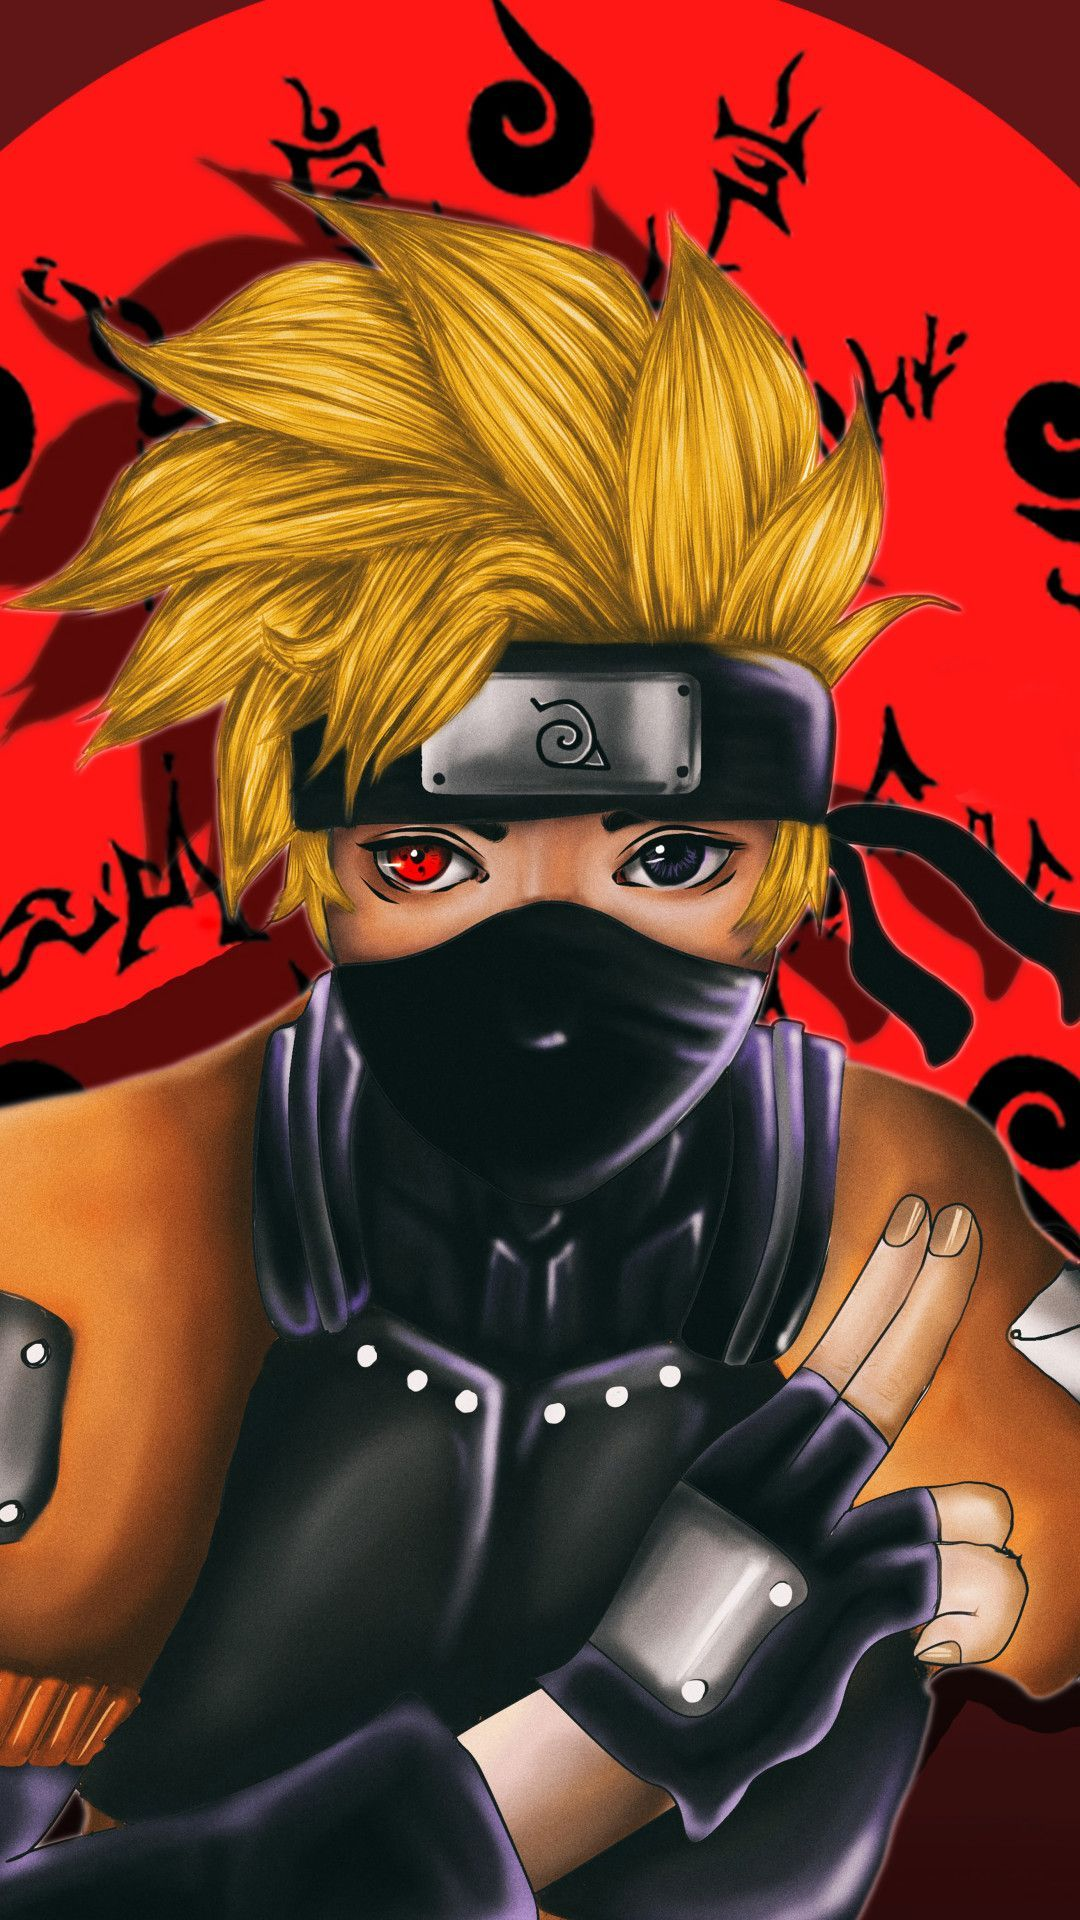 Naruto Wallpaper For Mobile Phone Tablet Desktop Computer And Other Devices Hd And 4k Wallpaper In 2021 Naruto Wallpaper Computer Wallpaper Desktop Wallpapers Naruto